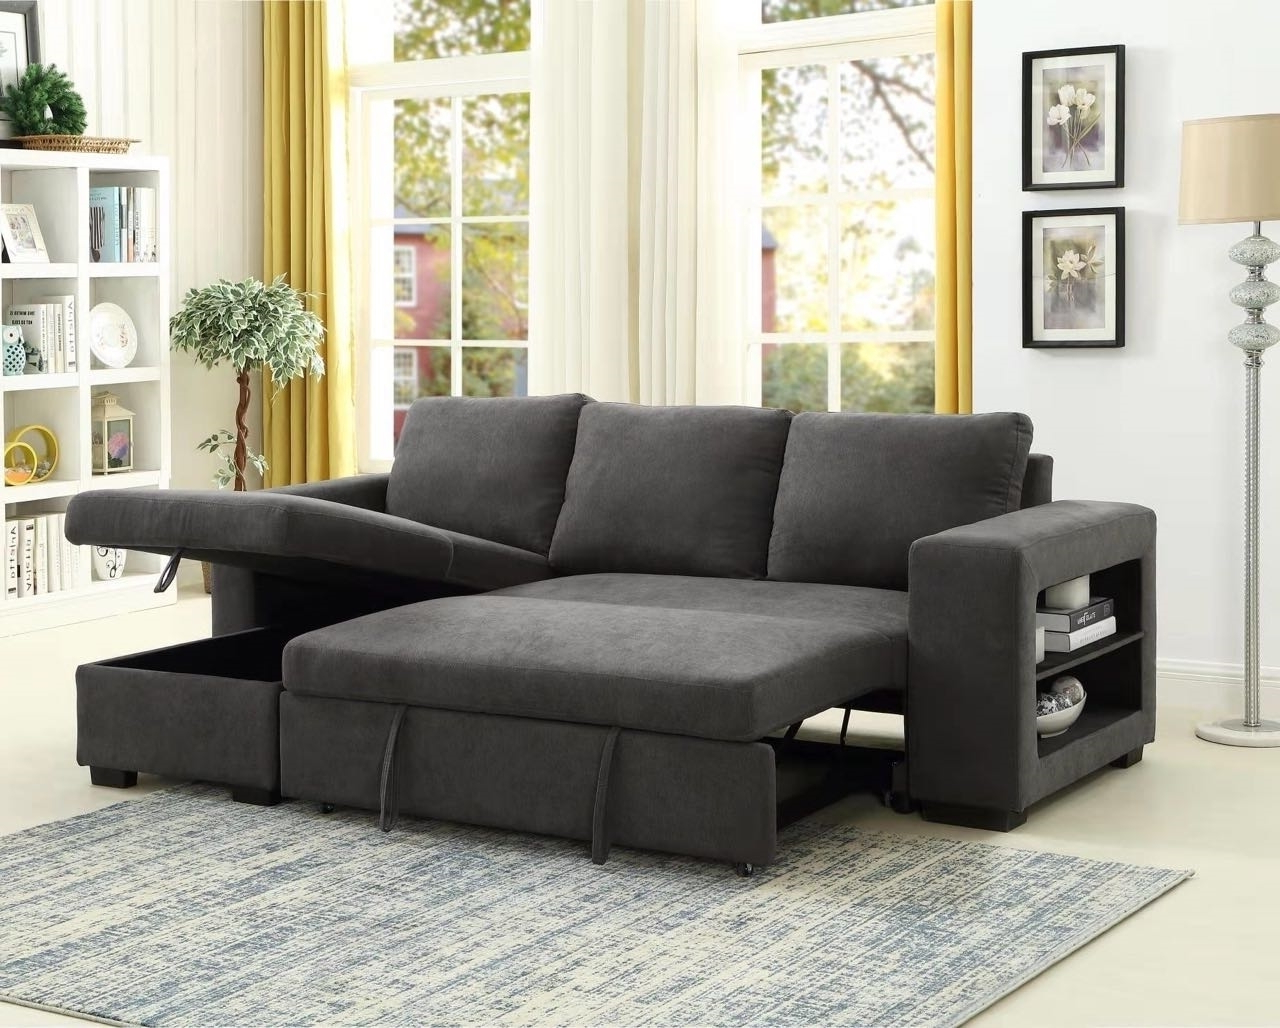 Most Recent Hartford Storage Sectional Futon Sofas With Lucena Reversible Sectional Sofa/Sofa Bed With Storage (View 10 of 25)